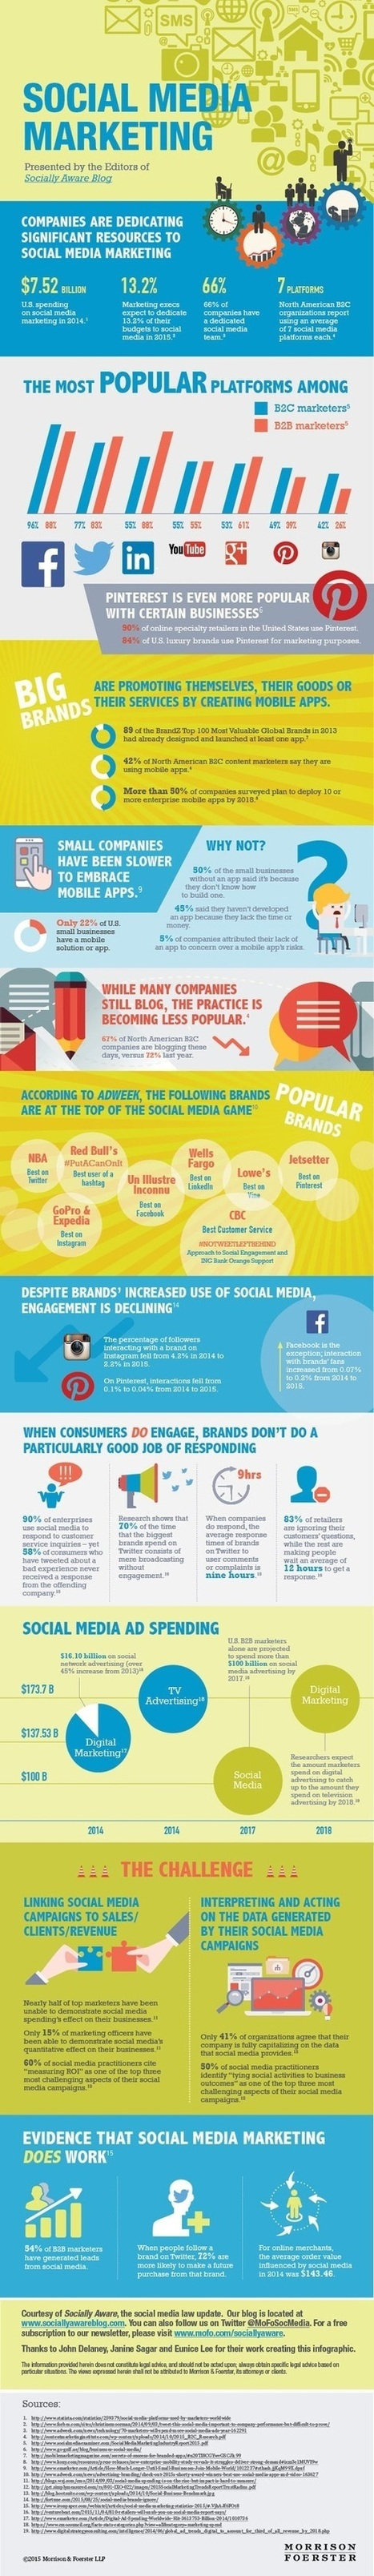 The State of Social Media Marketing [Infographic] | Surviving Social Chaos | Scoop.it